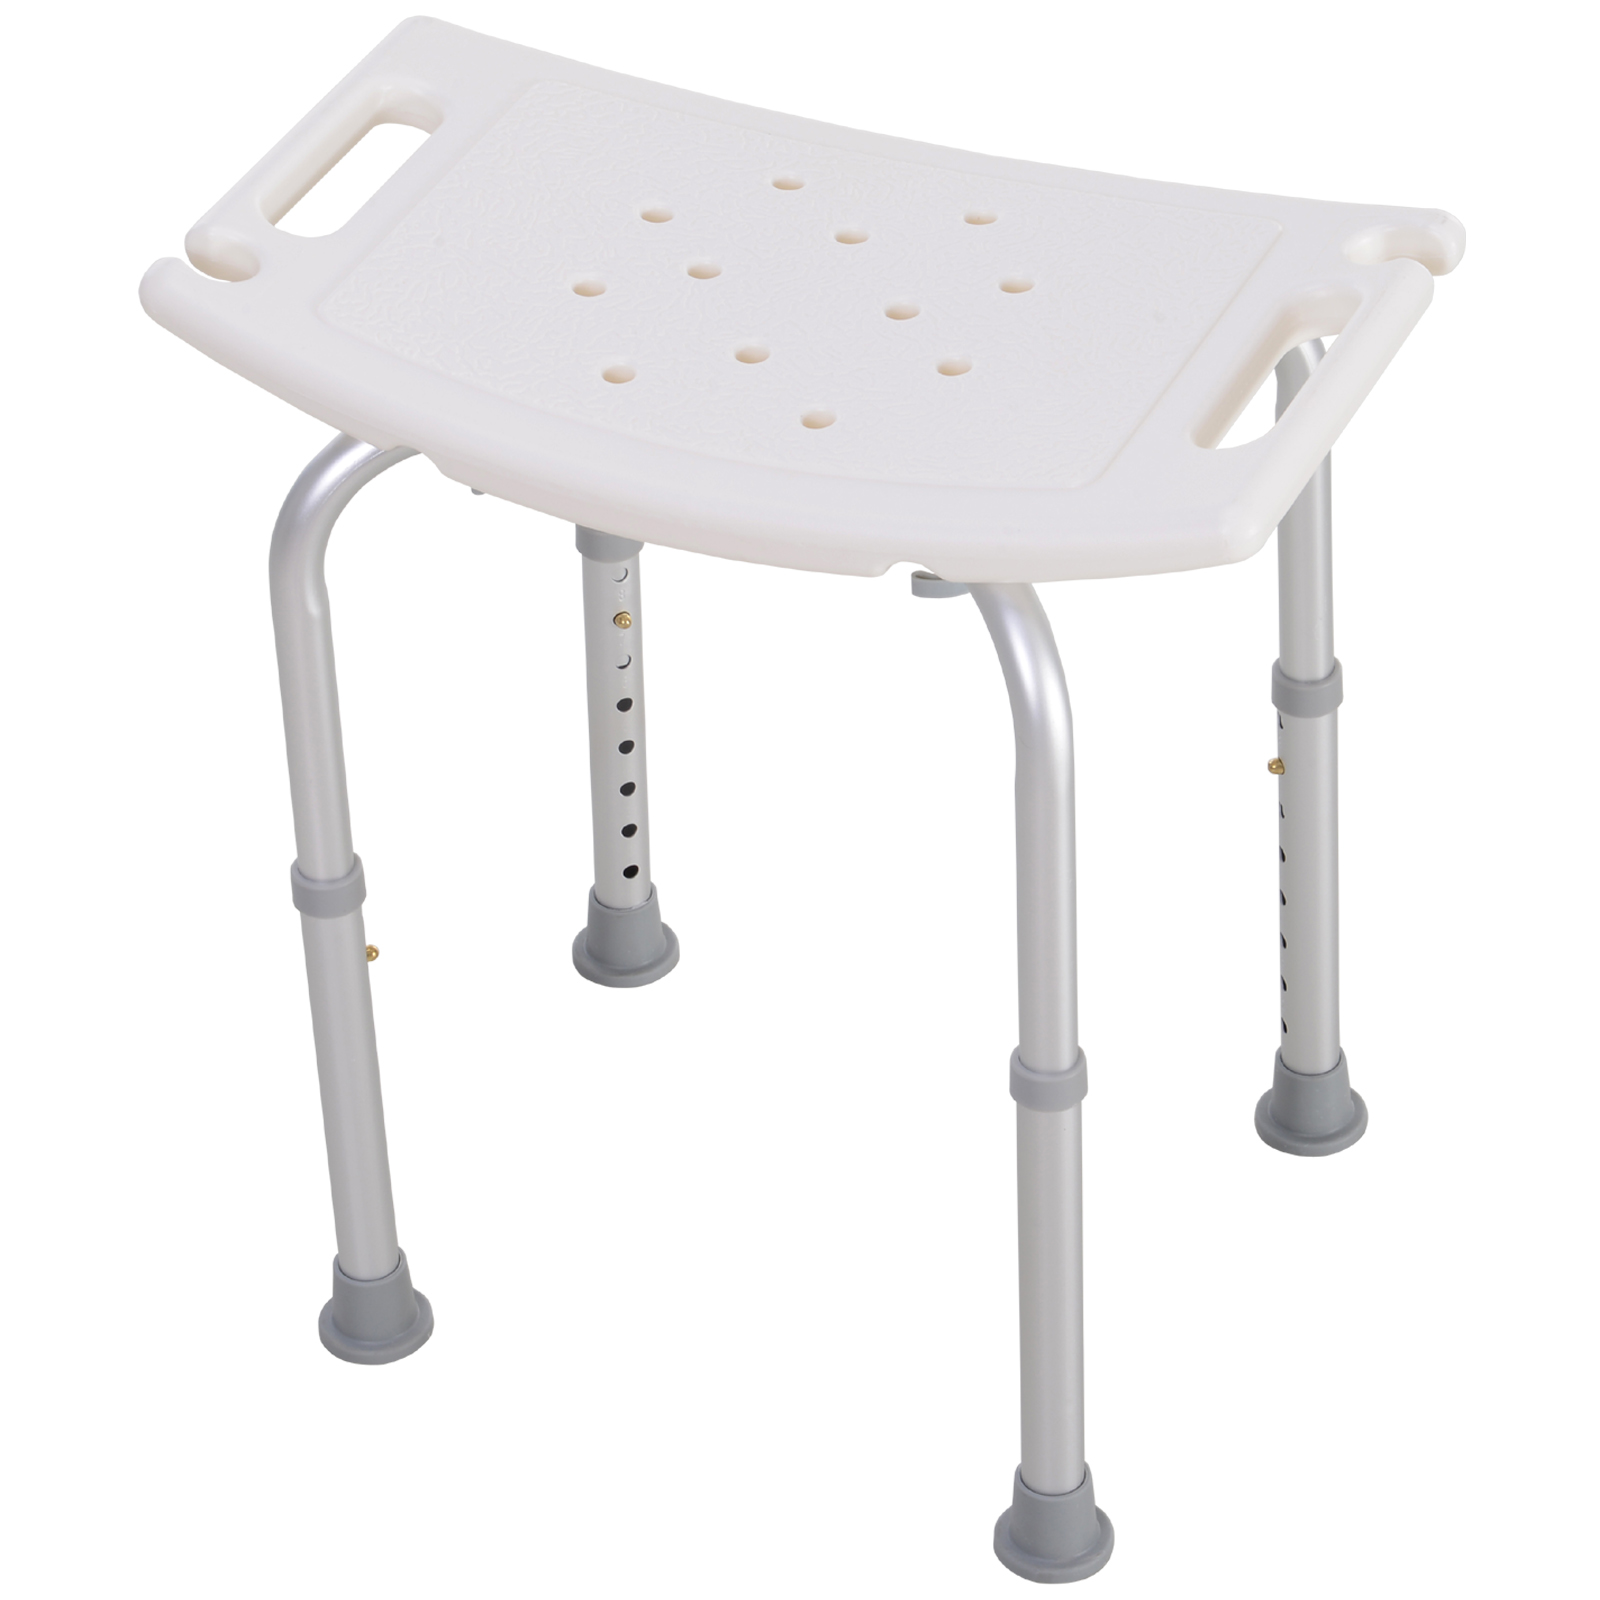 HOMCOM Stool Shower Seat Bathroom Slip-Resistant Adjustable Height 39.5-56.5 Cm